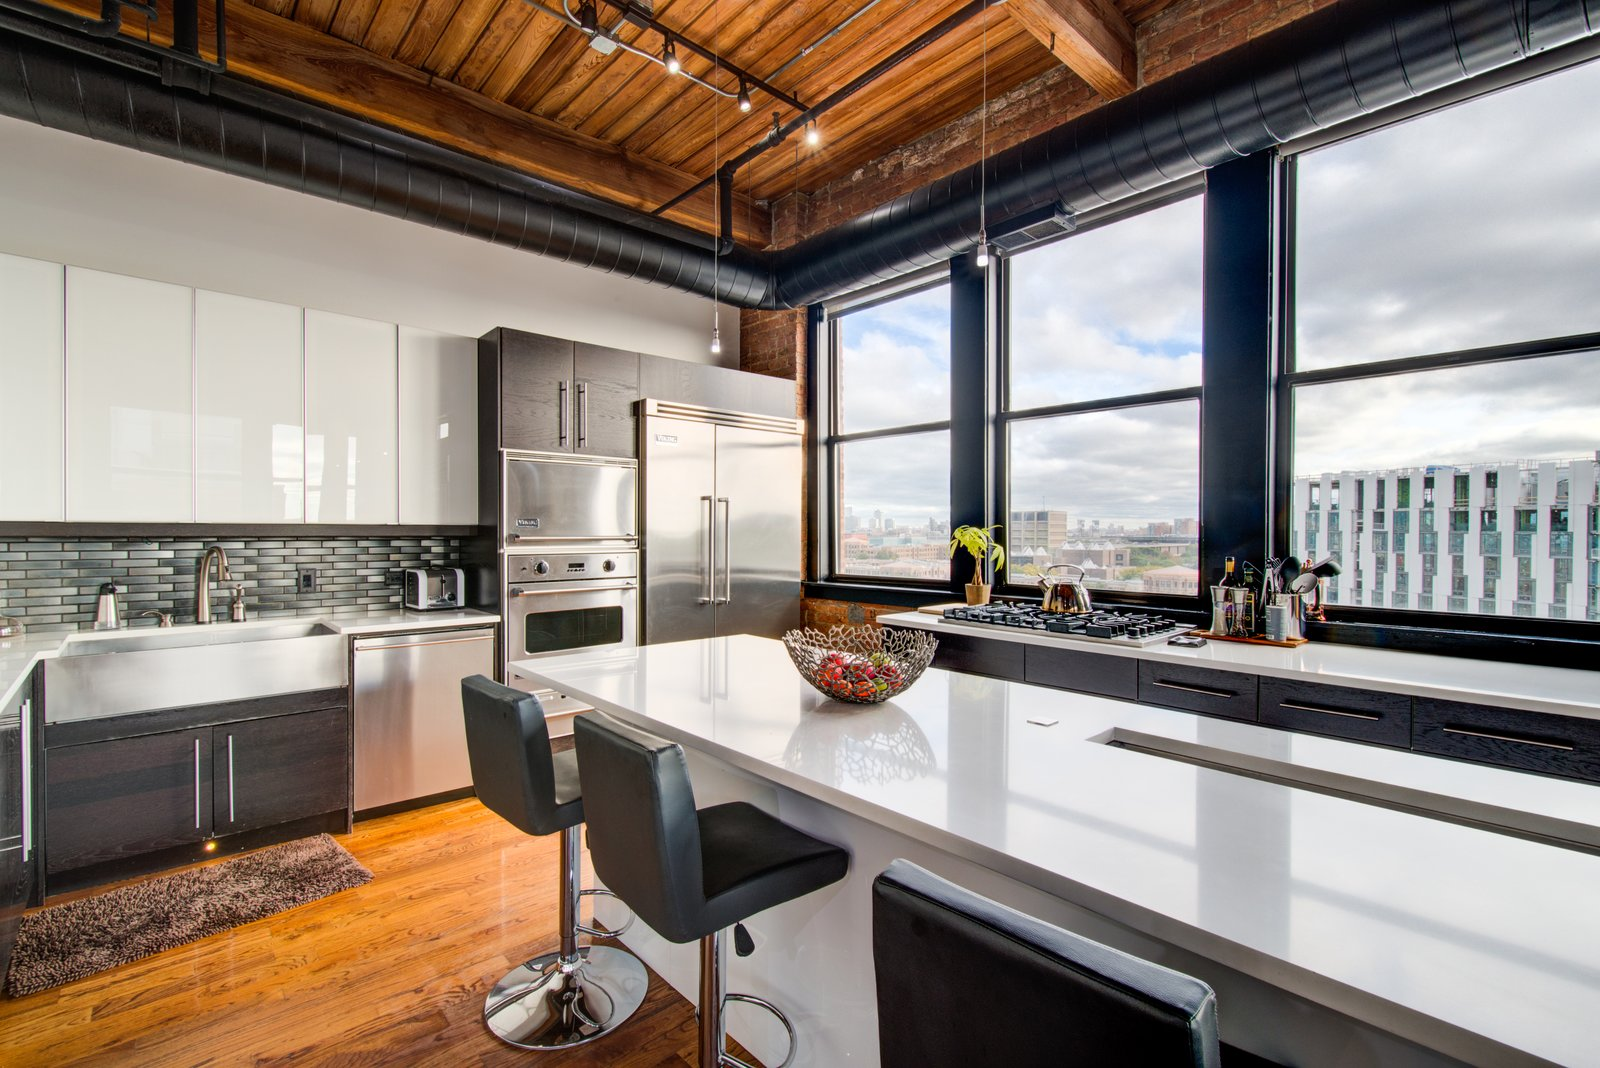 Kitchen, Wine Cooler, Cooktops, Wall Oven, Refrigerator, Medium Hardwood Floor, Microwave, Dishwasher, Quartzite Counter, Ceiling Lighting, Track Lighting, and White Cabinet  Penthouse That Starred on NBC's 'Chicago Fire' Asks $1.775M